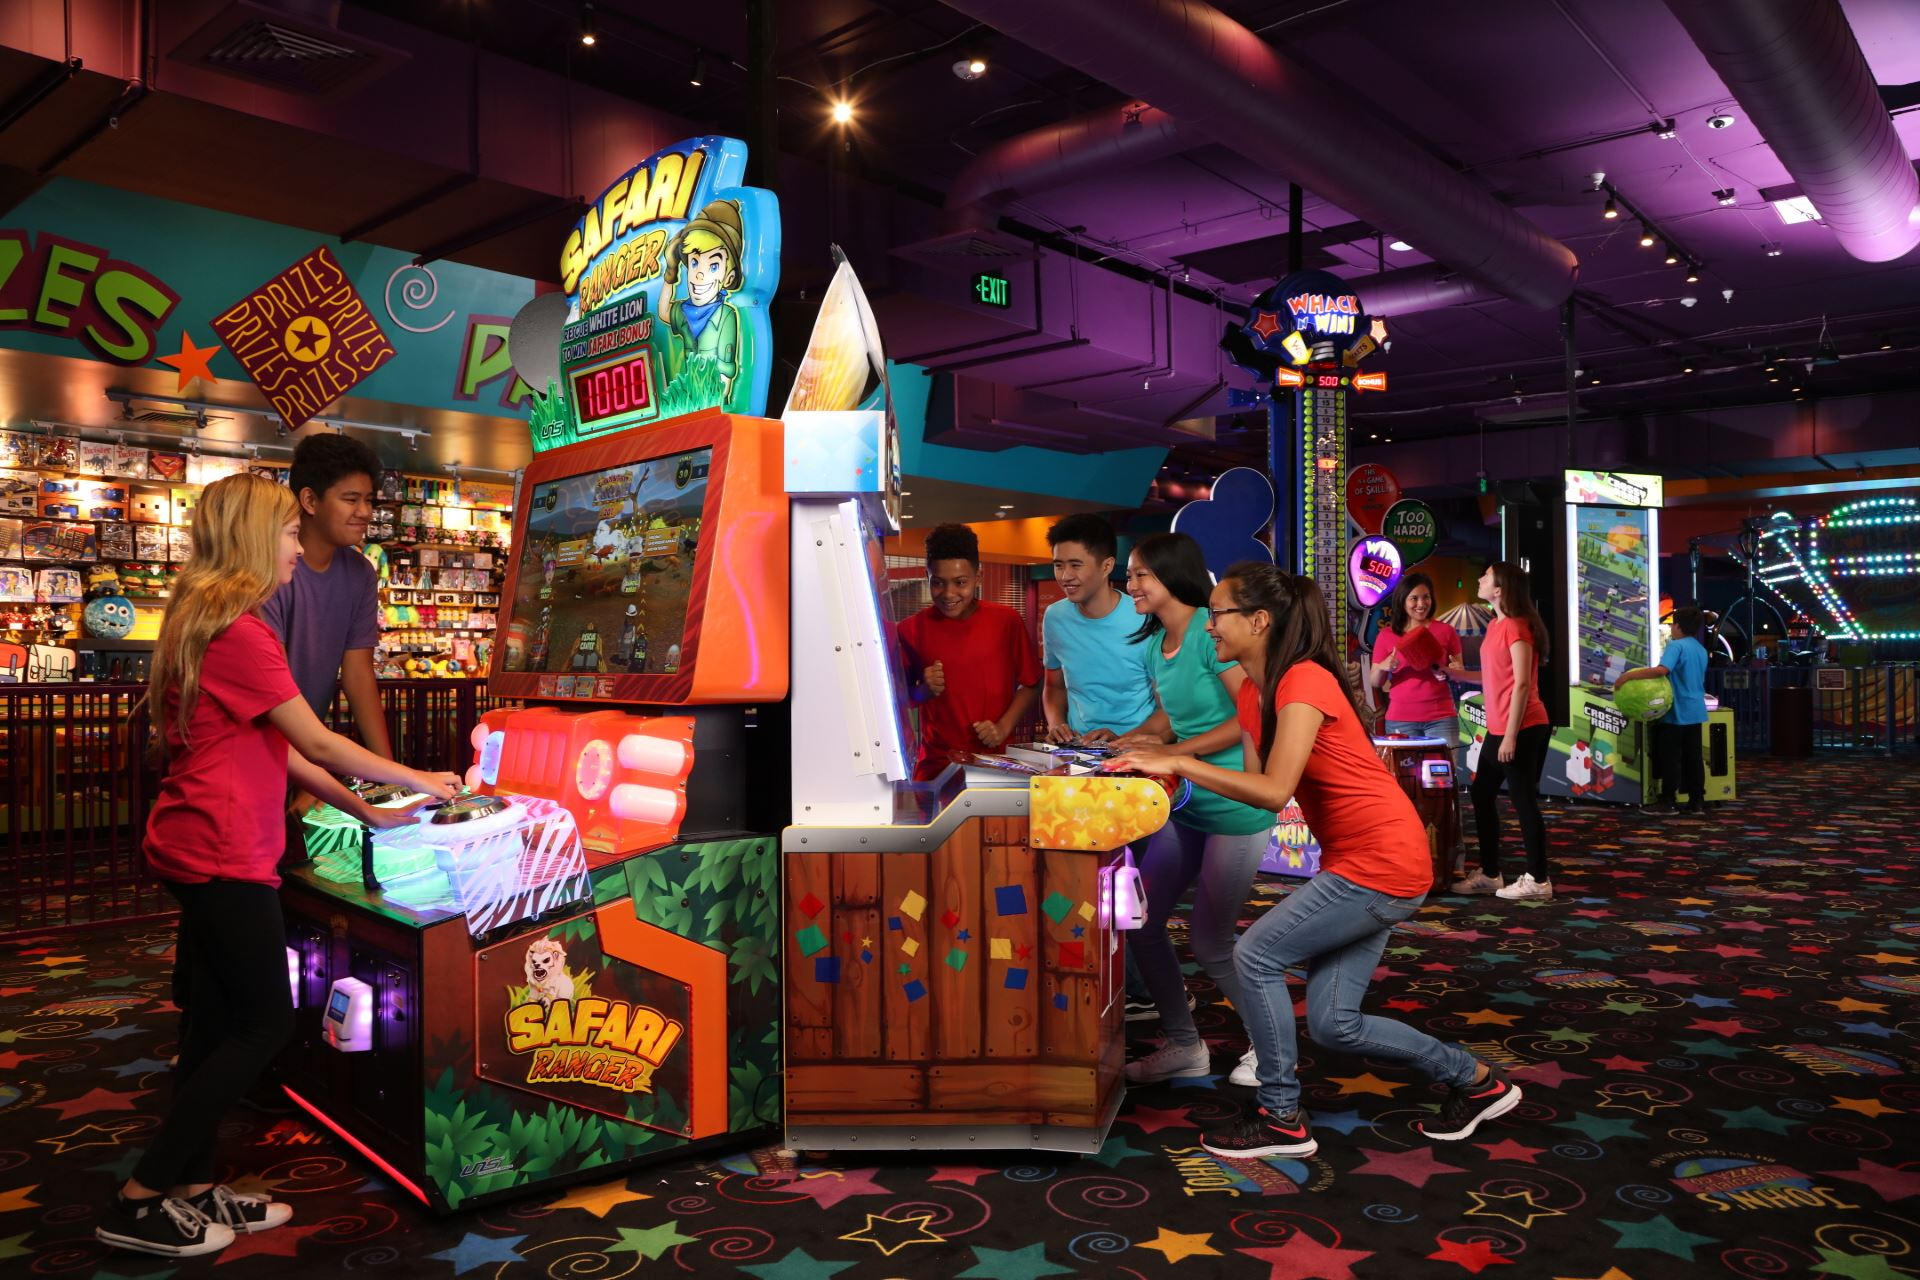 Family playing arcade games at John's Incredible Pizza in Buena Park, CA